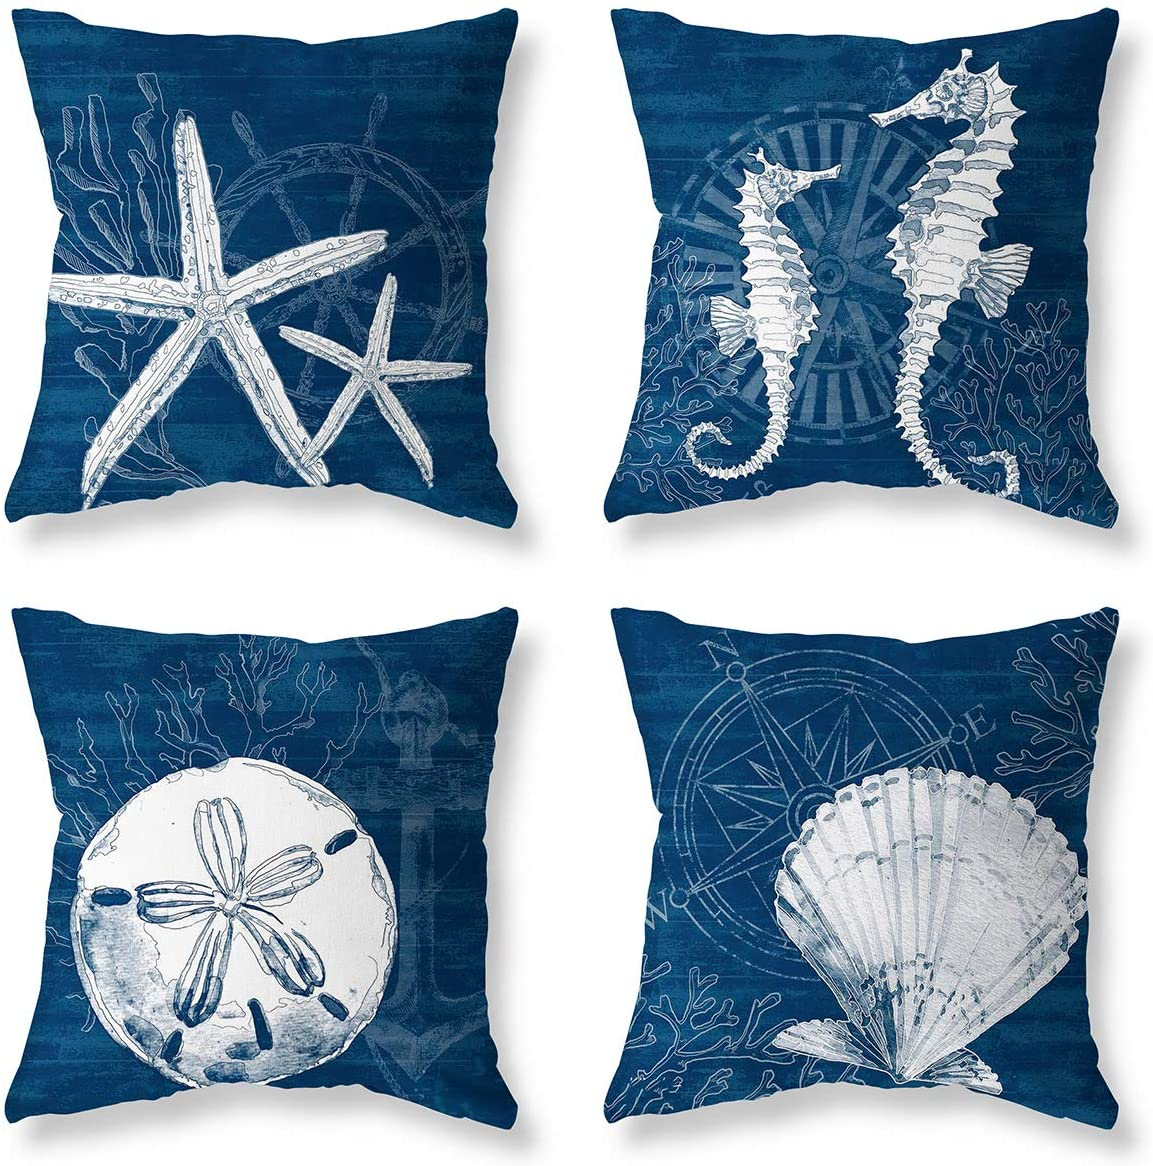 LuckyCow Ocean Nautical Theme Decor Throw Pillow Case Starfish Shell Conch Outdoor Decorative Cushion Covers 18 x 18 Inch, 4 Pack (Blue-1) (Green-1)